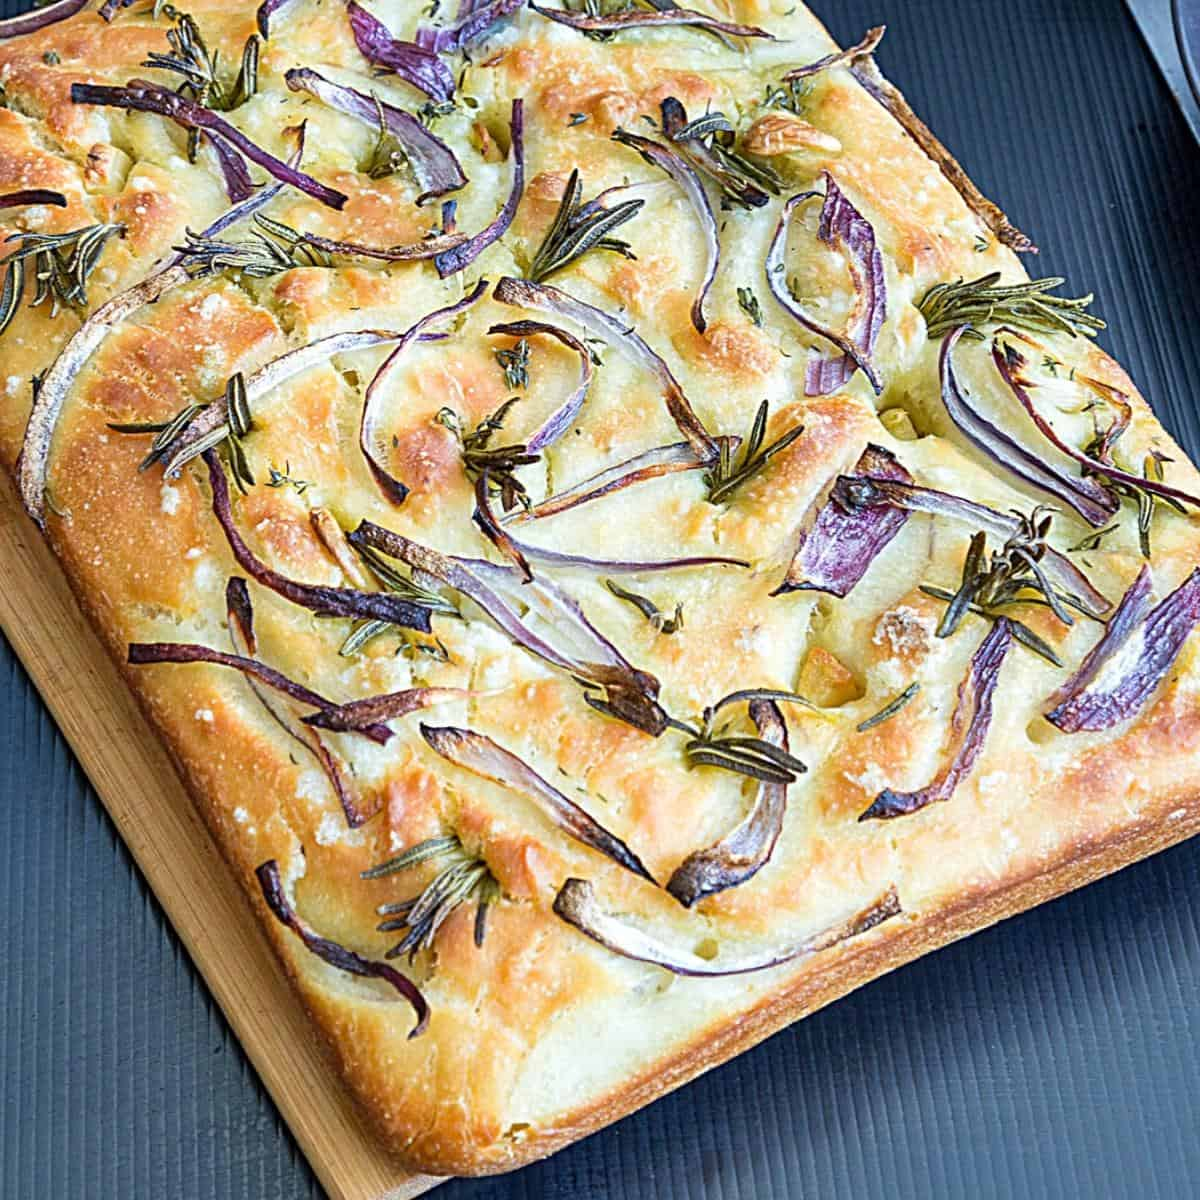 Italian focaccia with rosemary on a wooden board.